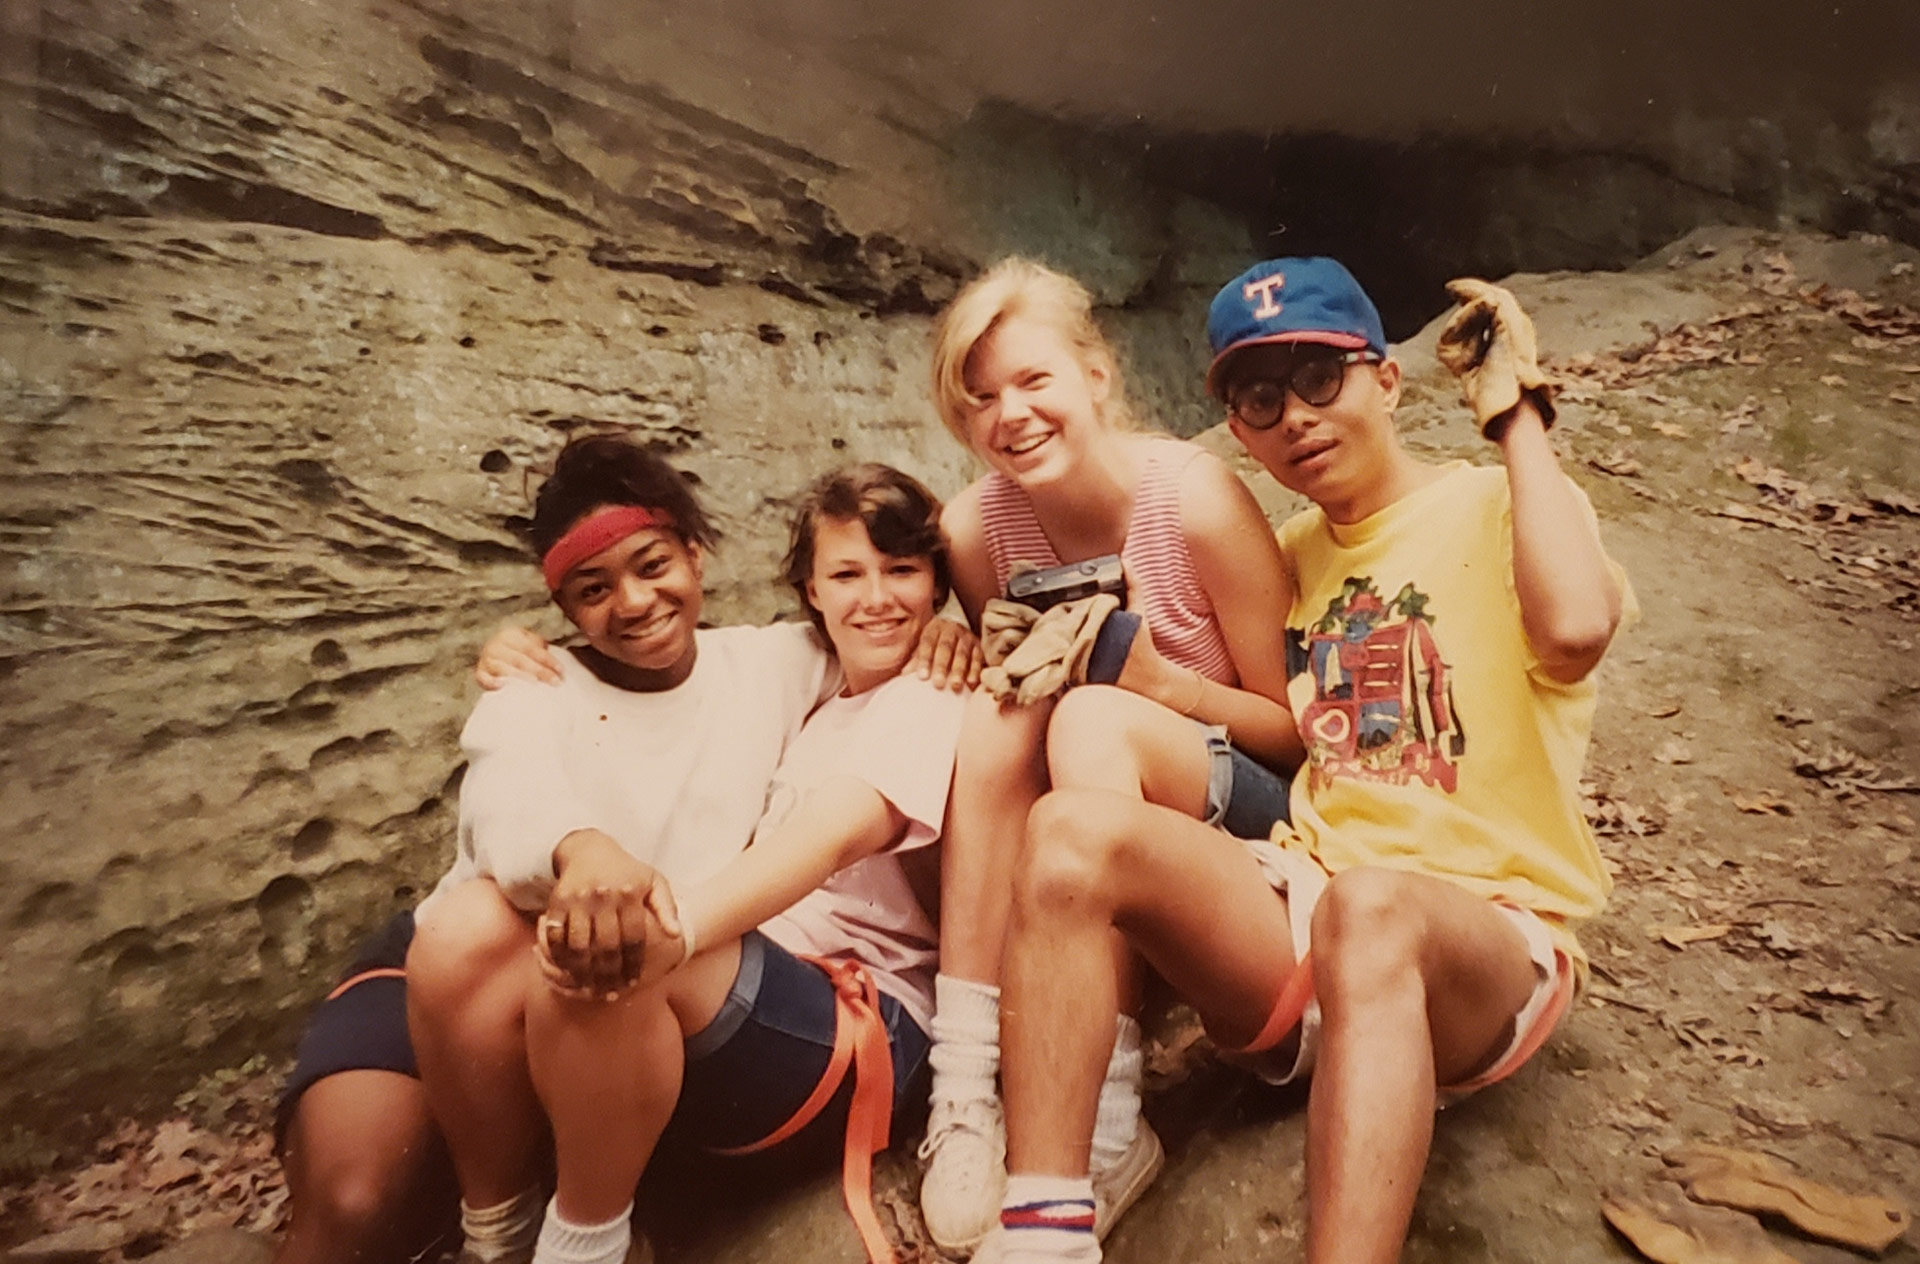 Anil Shahi and some friends pose on a rock climbing trip during his college days college days in Edinboro, Pennsylvania, 1990. | Courtesy of Anil Shahi